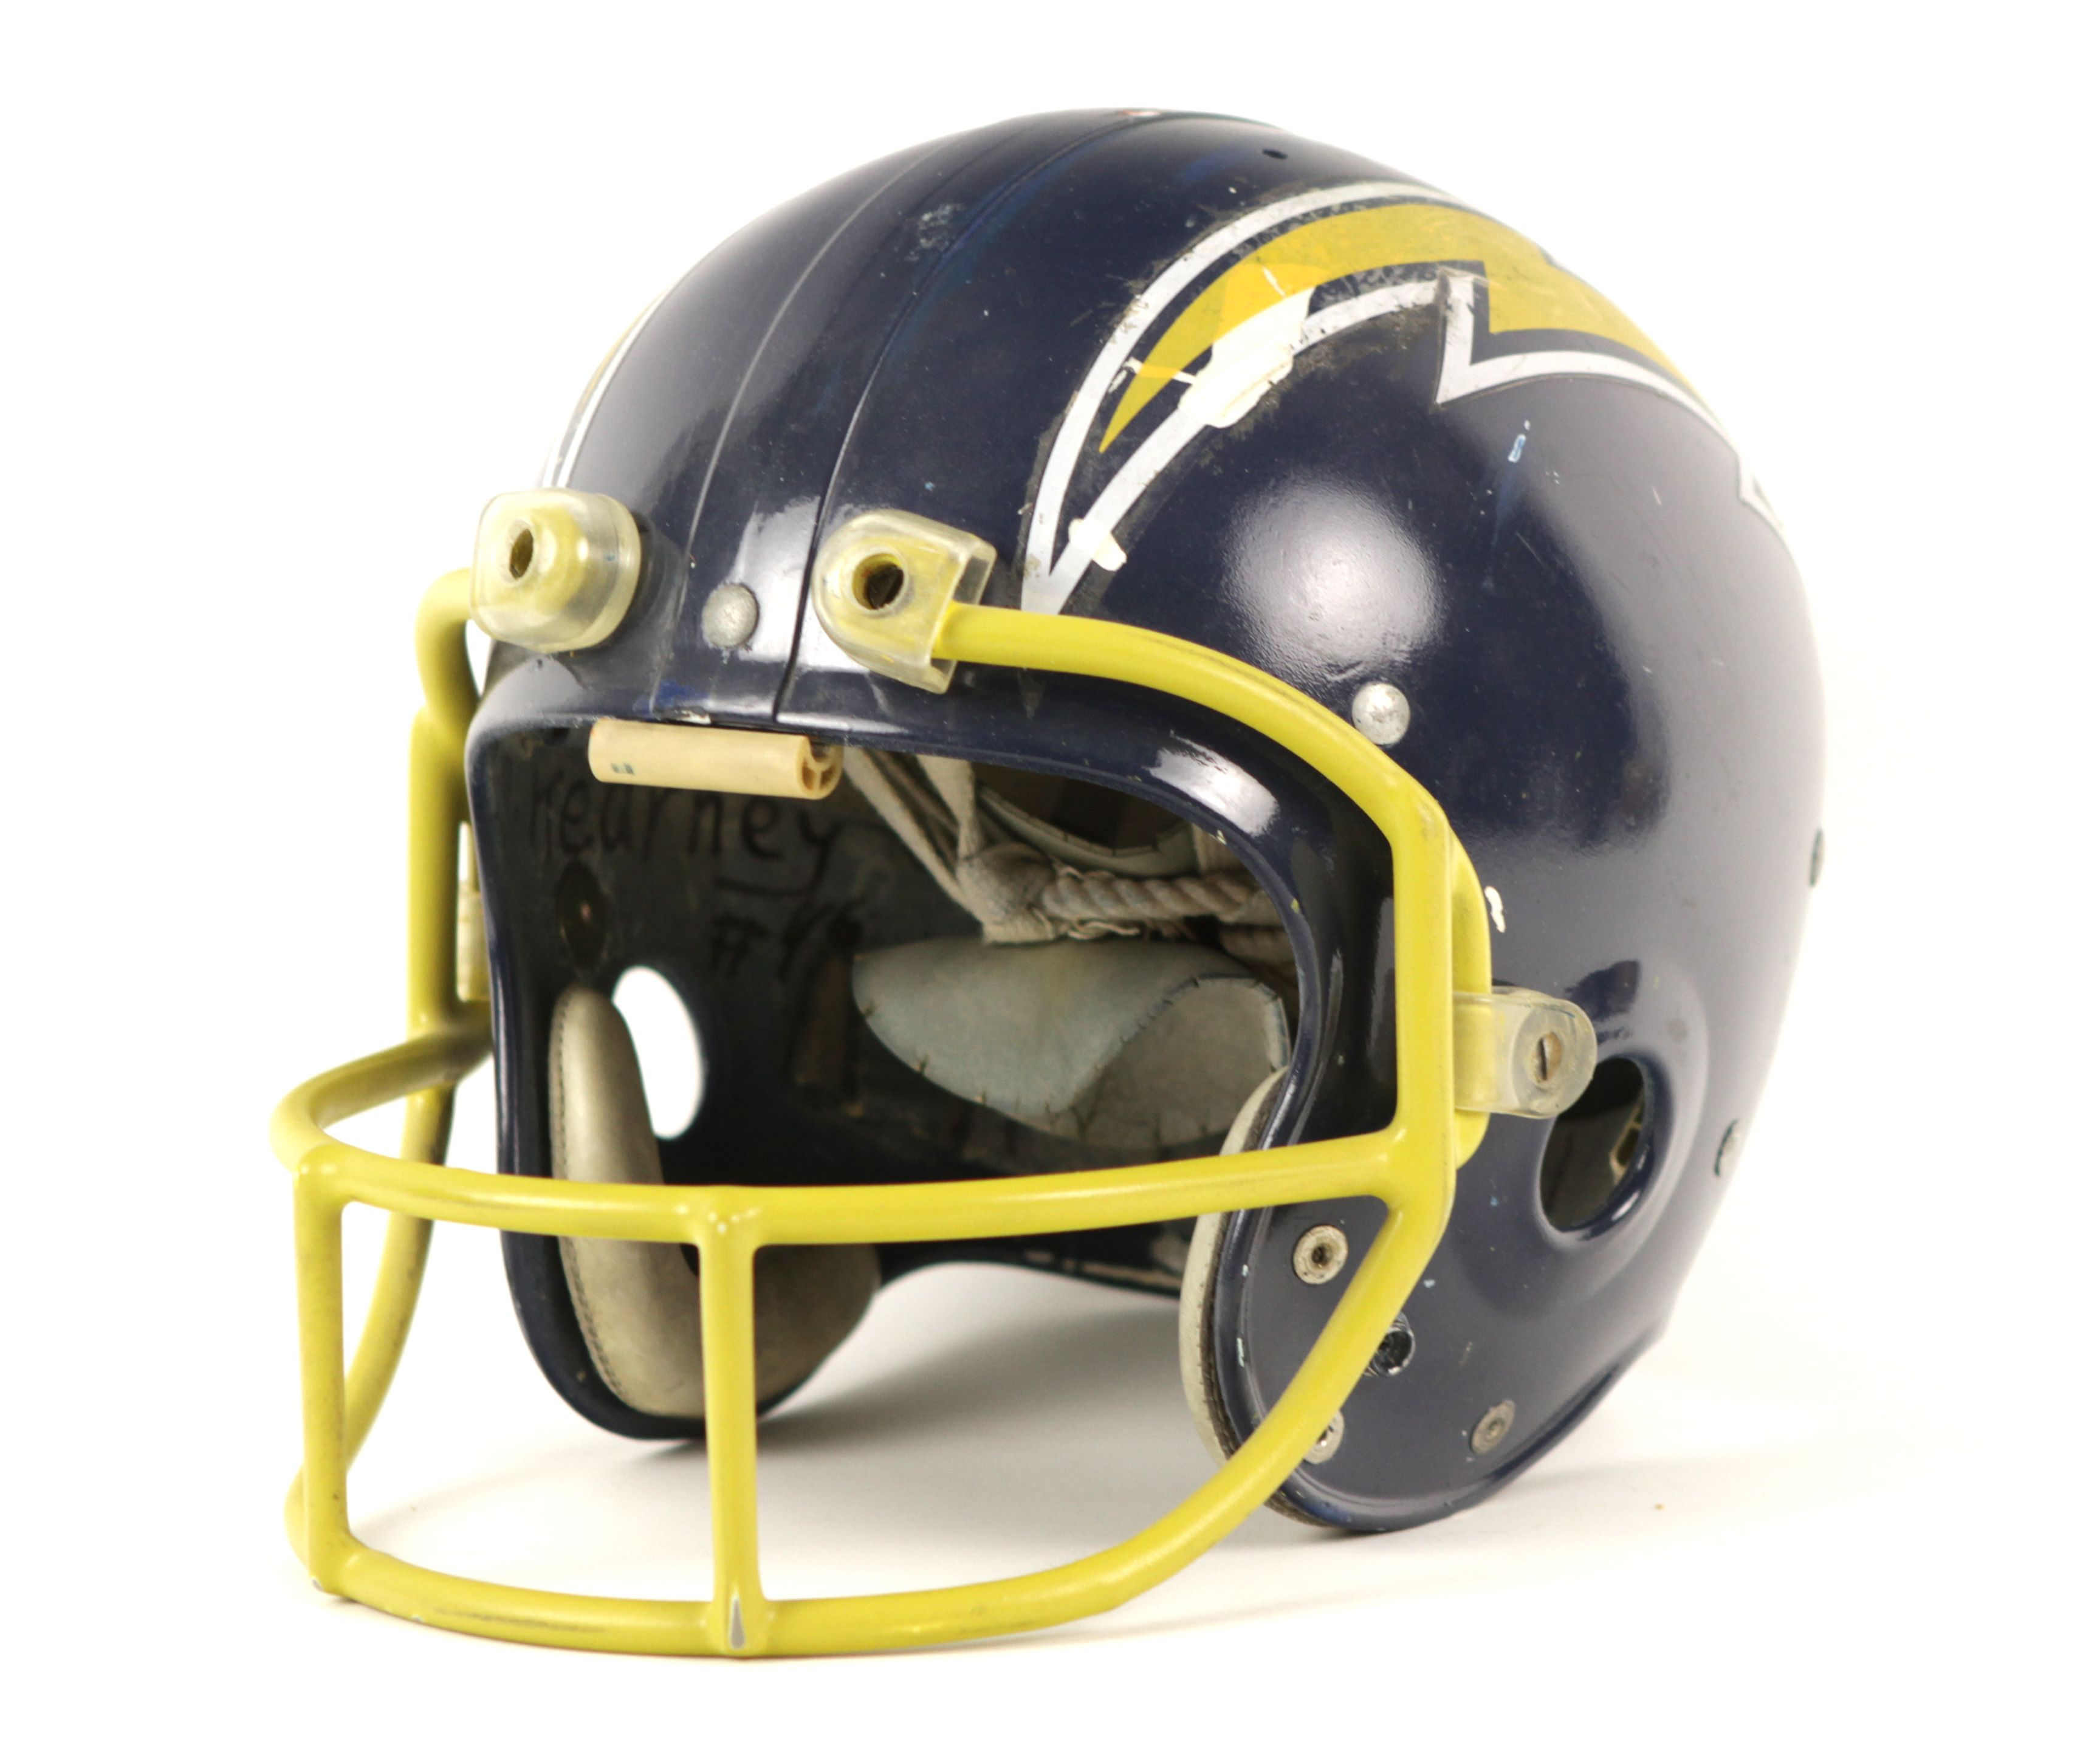 San Diego Chargers First Game: 1971 Circa San Diego Chargers Game Worn